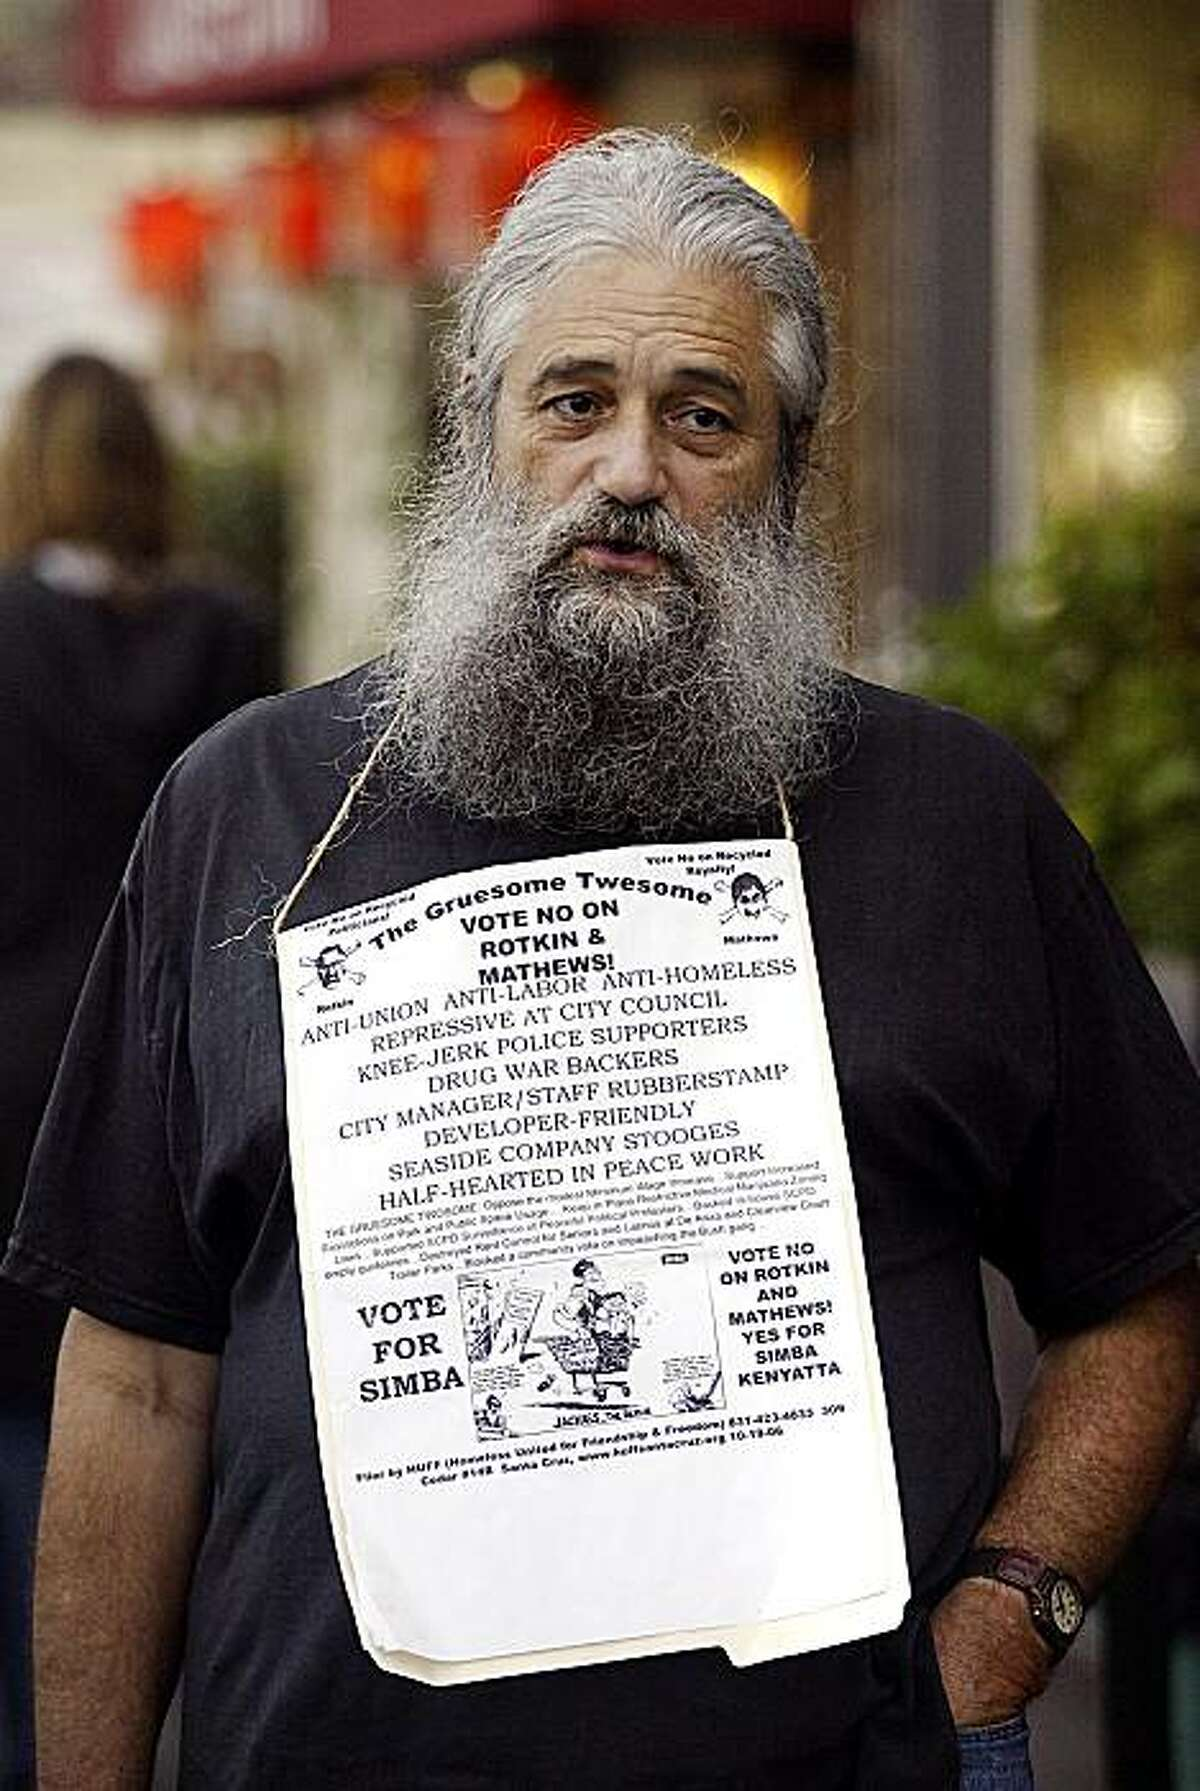 This photo taken Friday, Nov. 6, 2009 shows homeless advocate Robert Norse in Santa Cruz, Calif. Norse's Nazi salute lasted fewer then five seconds before he was removed from the Santa Cruz City Council meeting in handcuffs. But Santa Claus-bearded gadfly's free speech lawsuit against the city has lasted more than six years and may be destined for the U.S. Supreme Court.